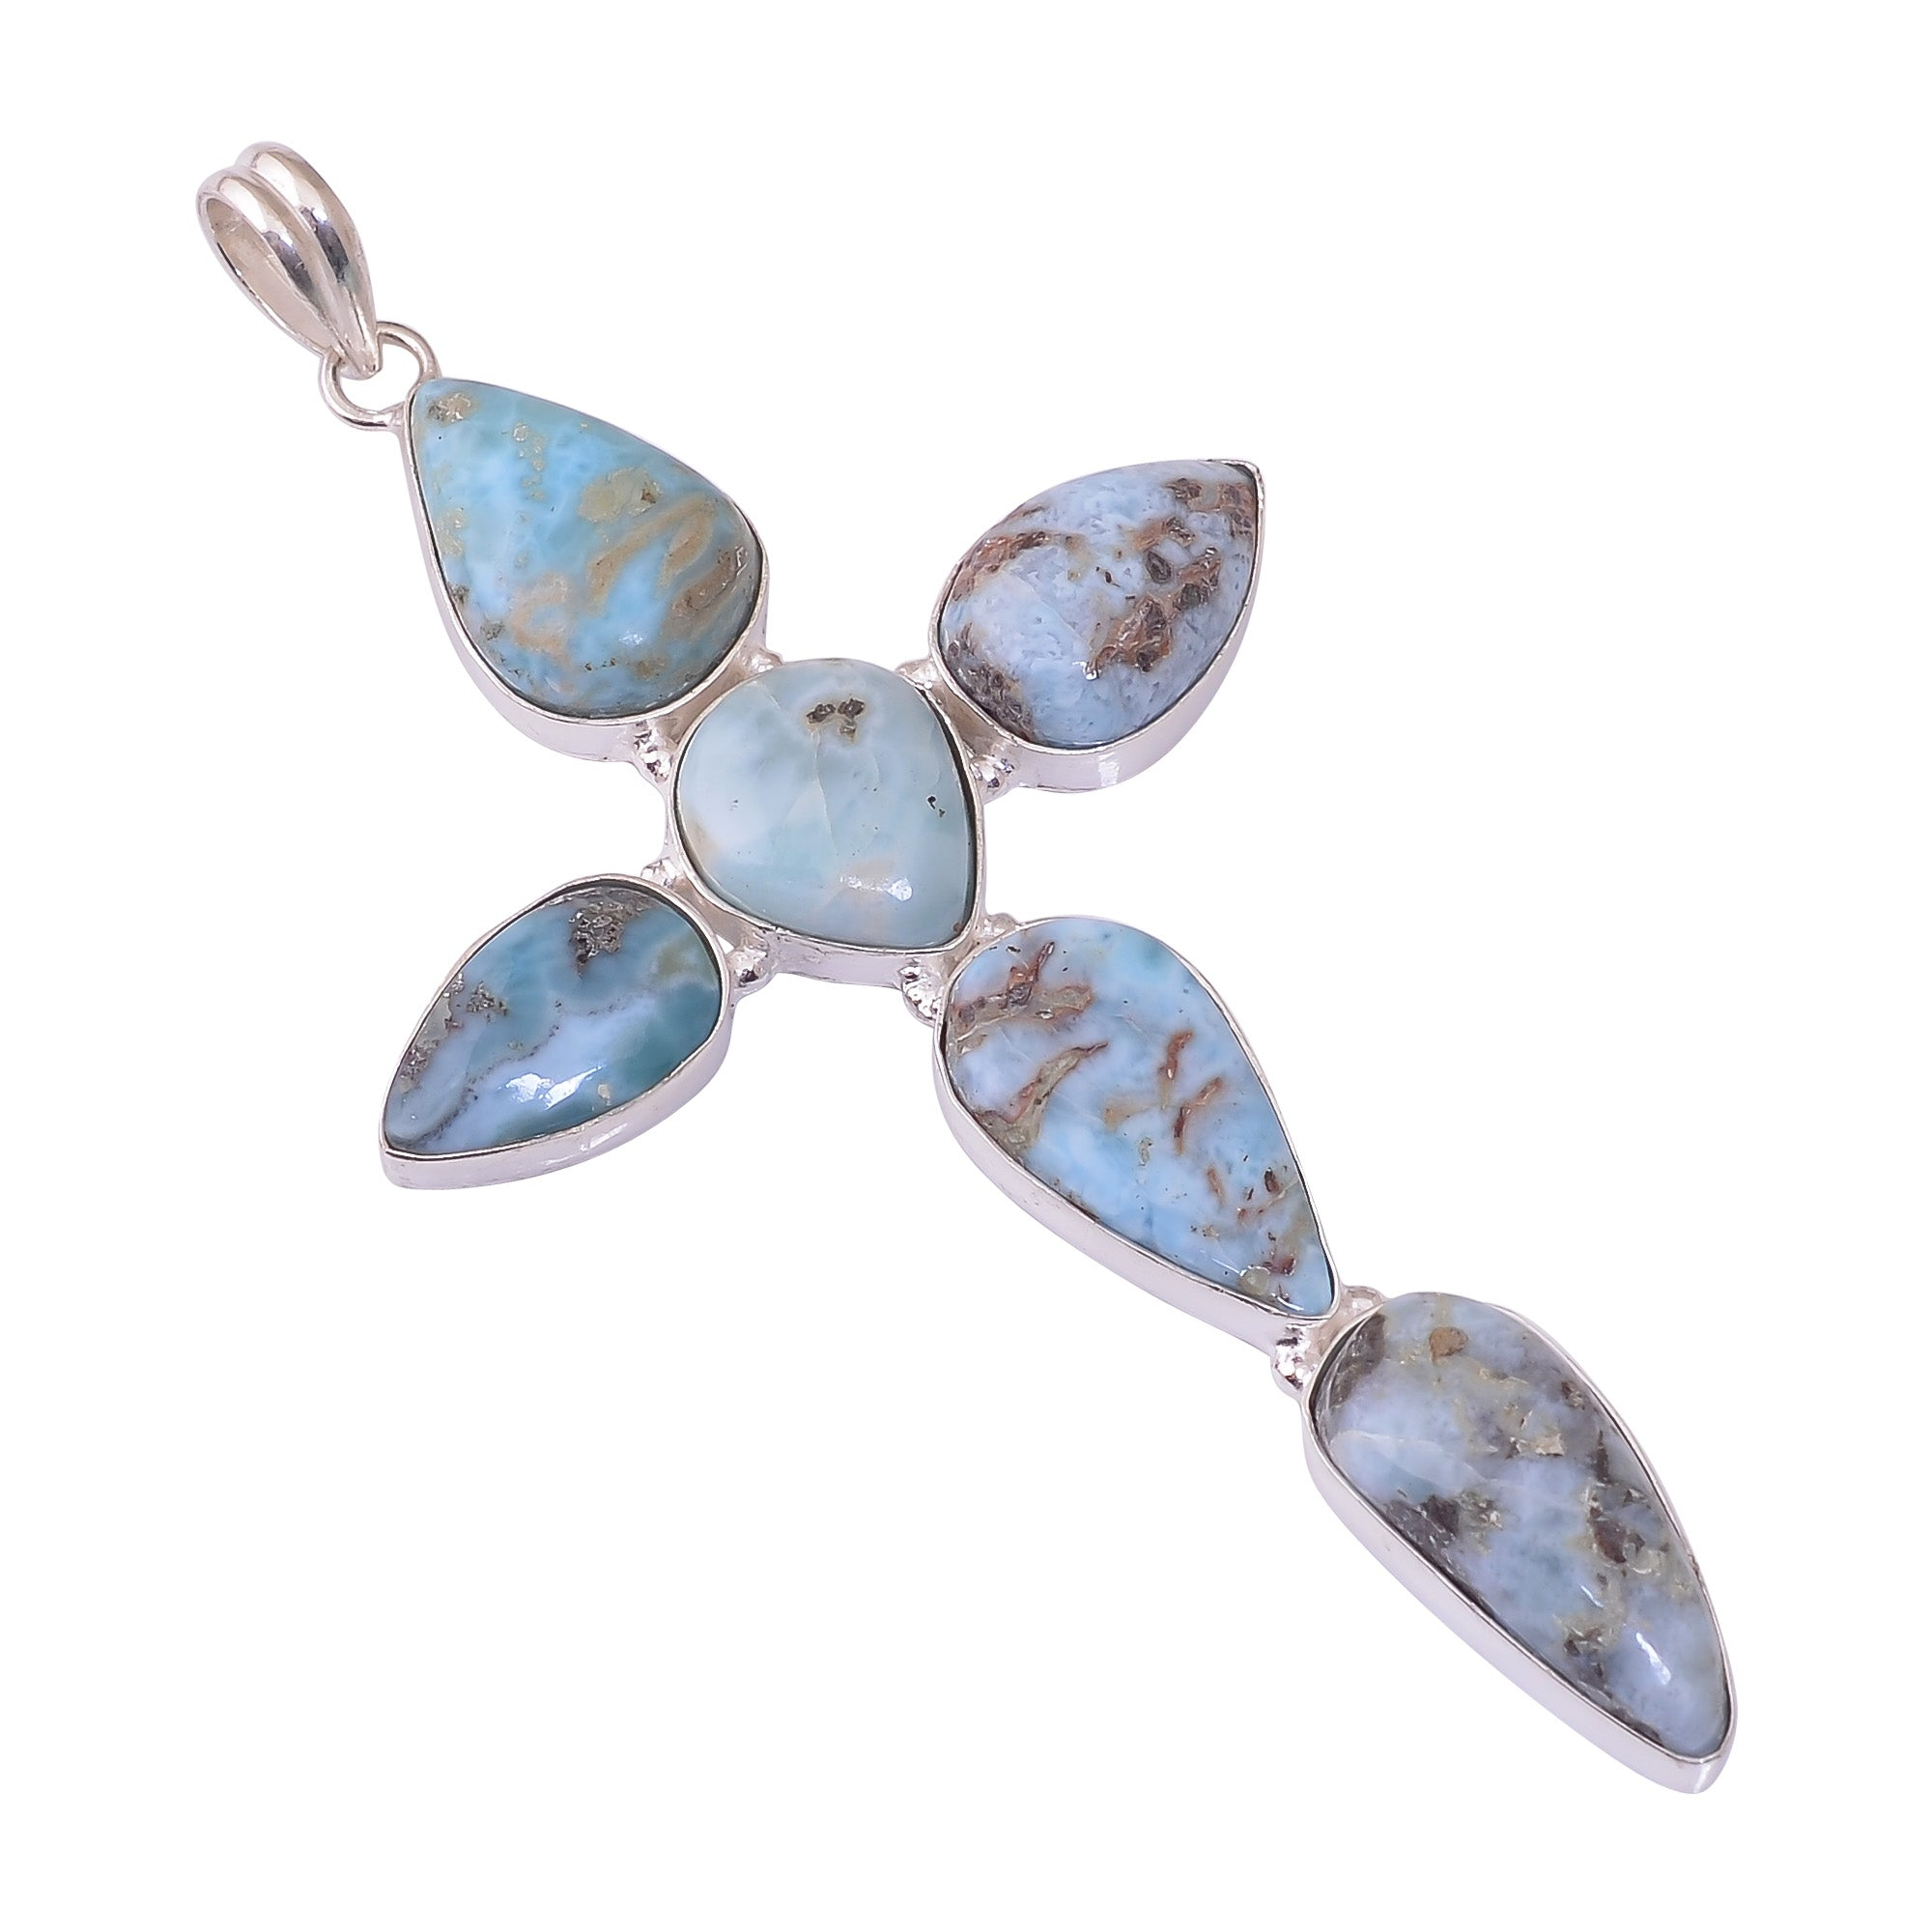 Bullahshah Sterling Silver Overlay Cross Pendant with Larimar Gemstone, Natural Handmade Stone Necklace for Women with Rhodium Plated Chain, NLG-1703